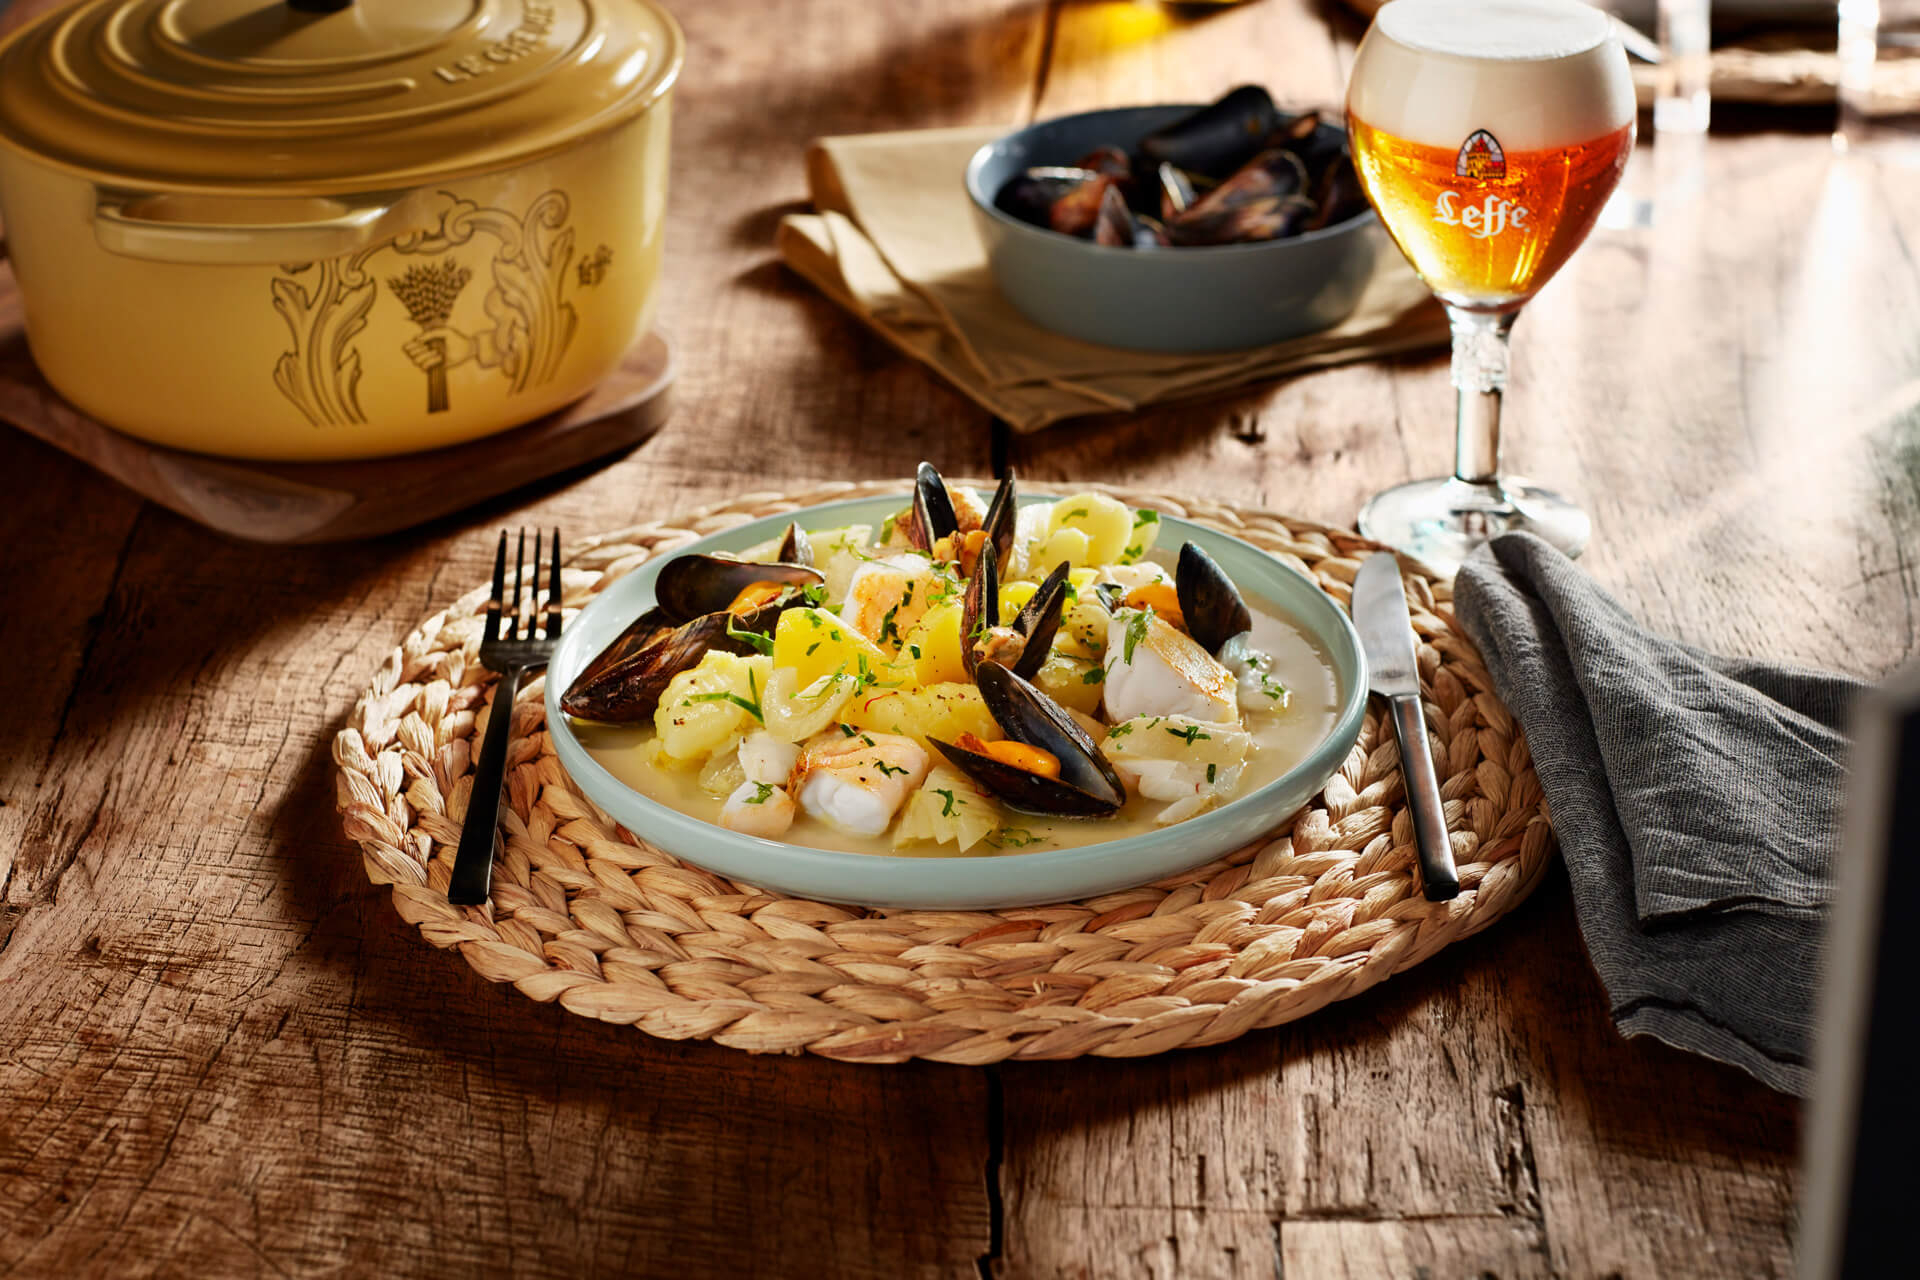 Leffe - food photography by Erik de Koning - mixed seafood and beer